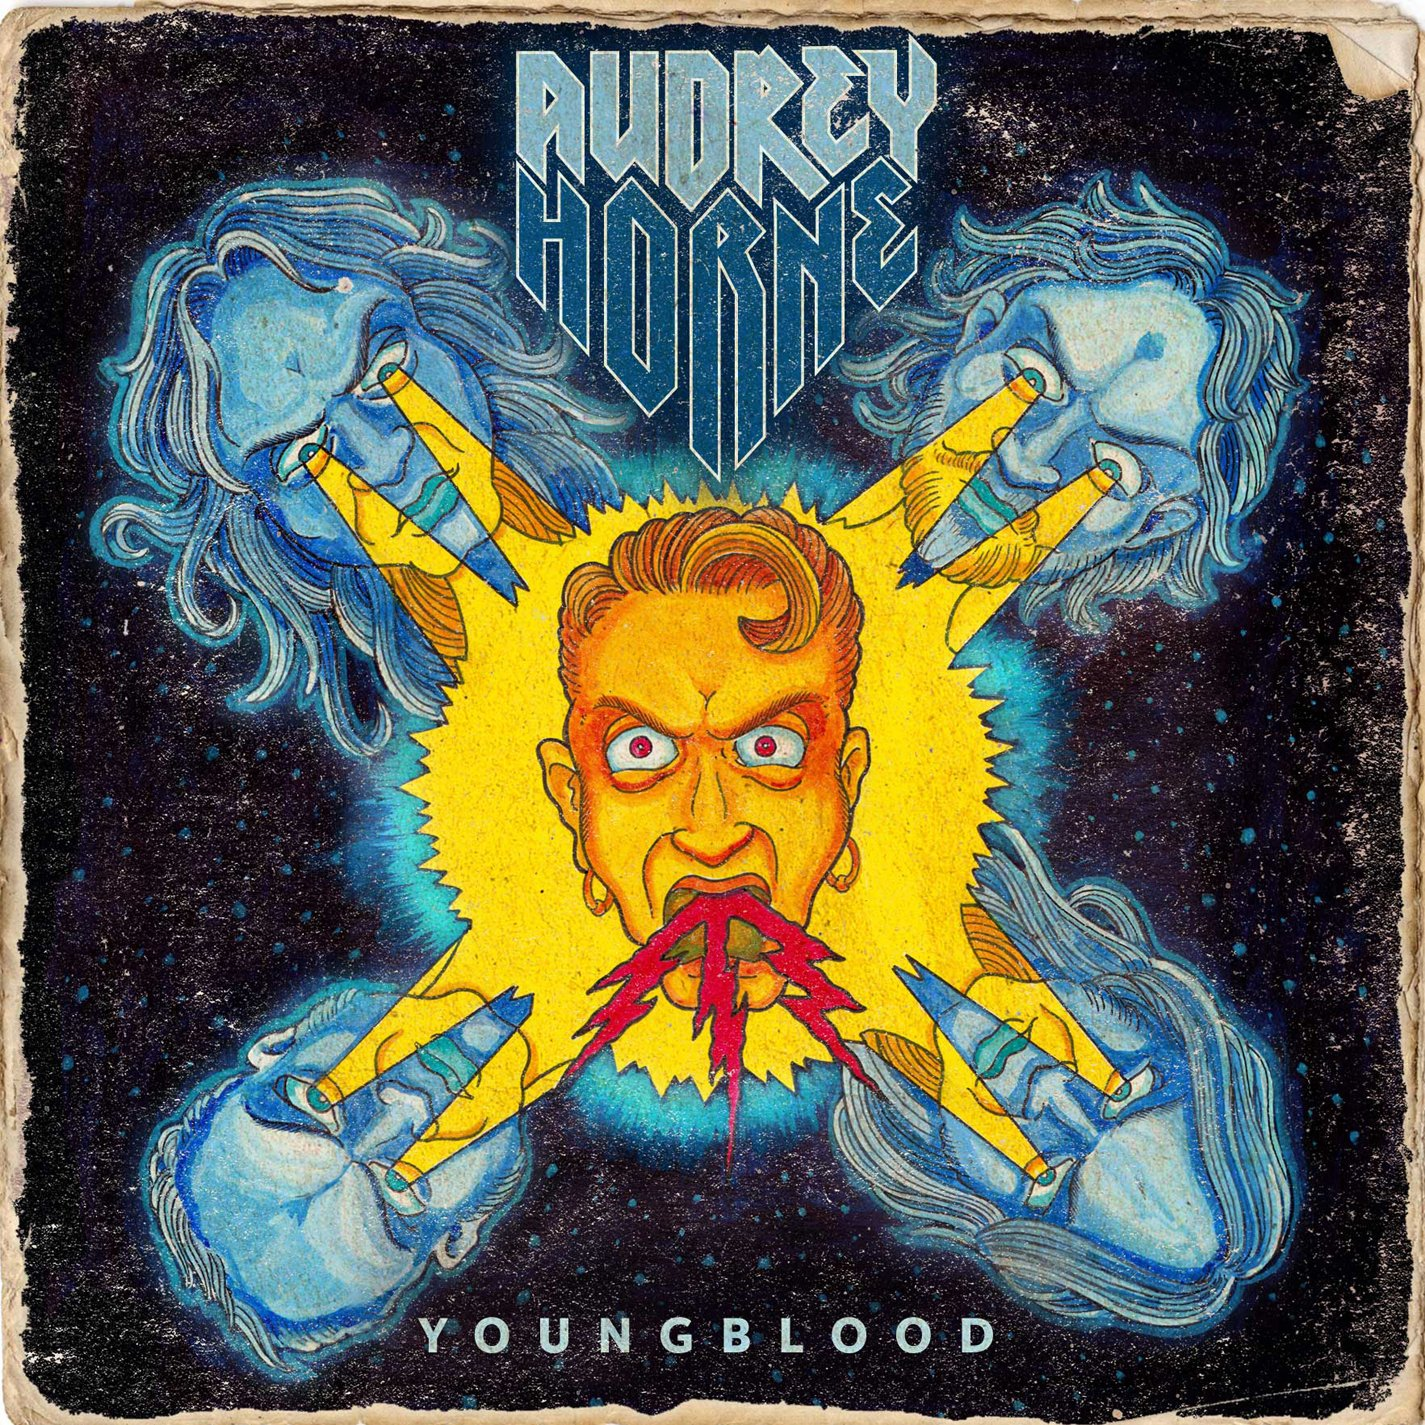 CD : Audrey Horne - Youngblood (CD)